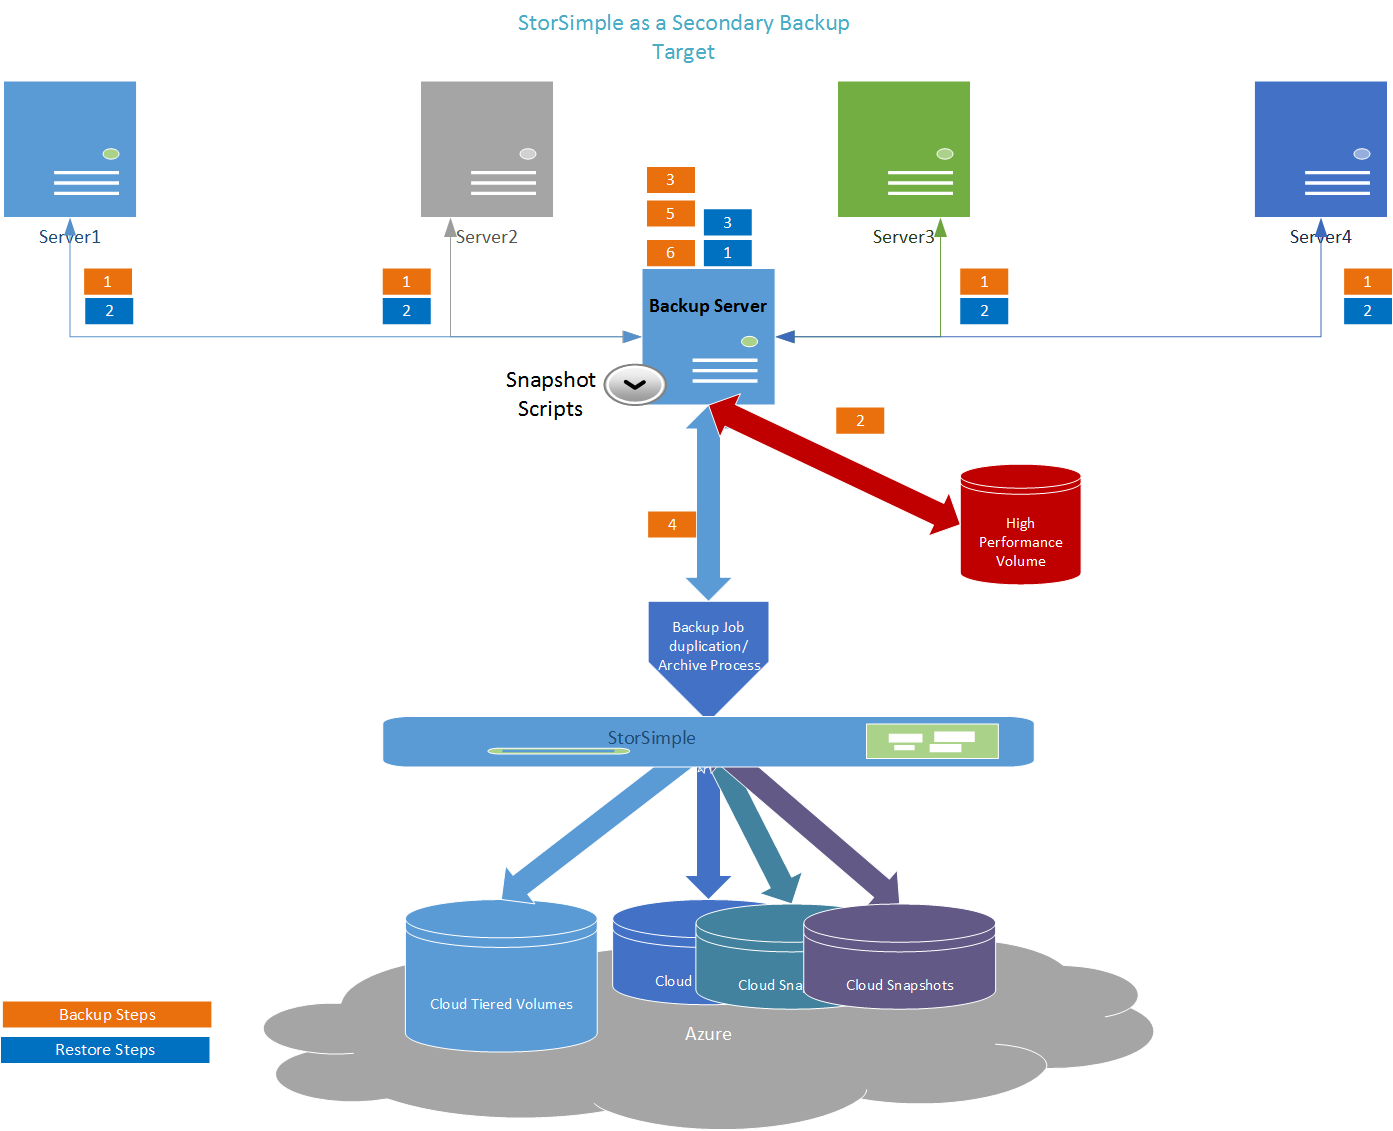 Veeam Cloud Connect furthermore Storage Snapshot Backup From Hpe 3par Storeserv in addition Veeam Backup 7 furthermore Replication job in addition White Box Storage. on veeam backup diagram